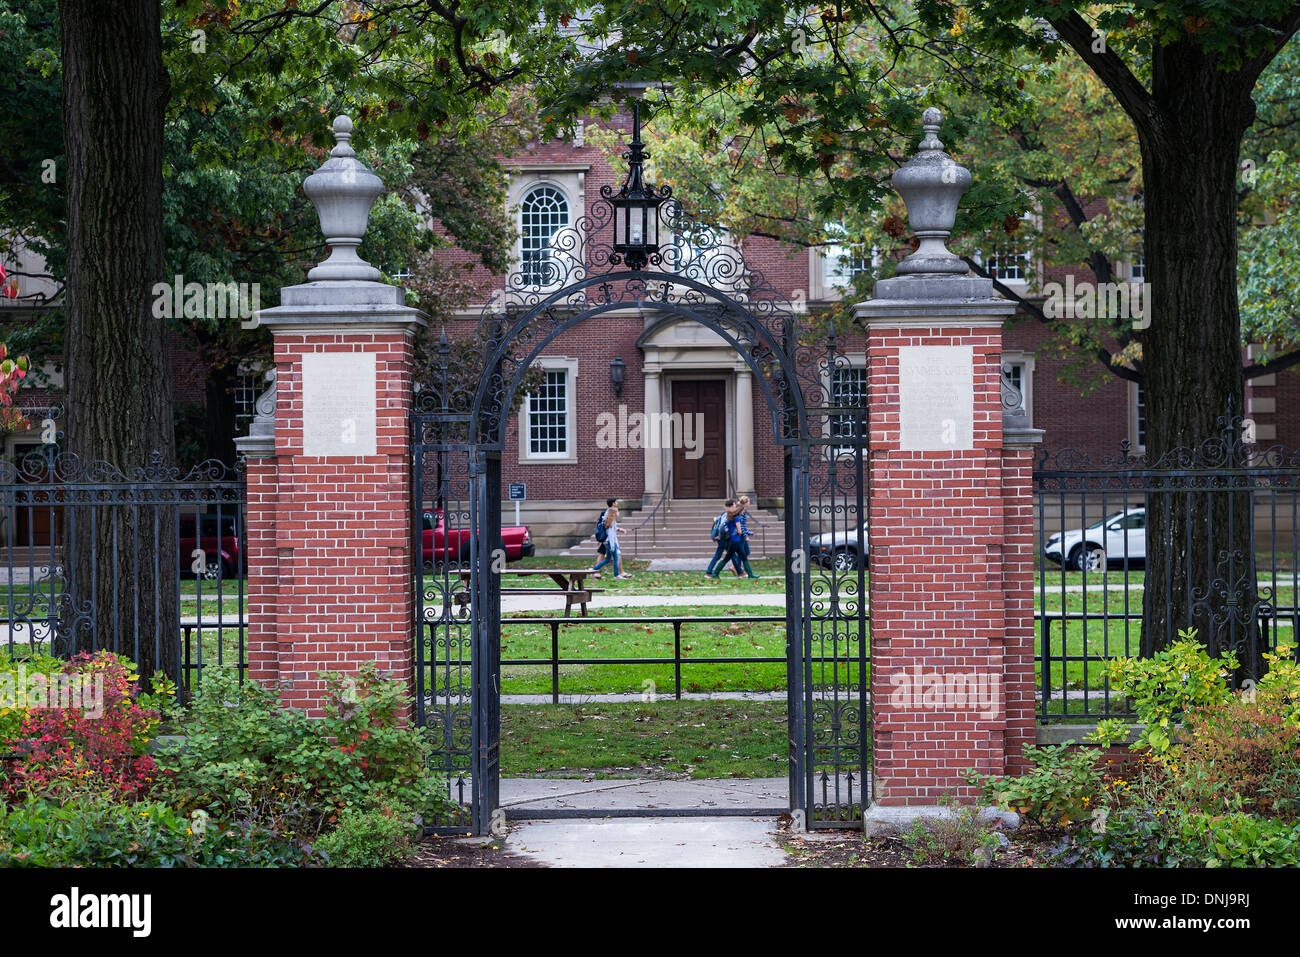 The Symmes Gate on the campus of Williams College, Williamstown, Massachusetts, USA - Stock Image